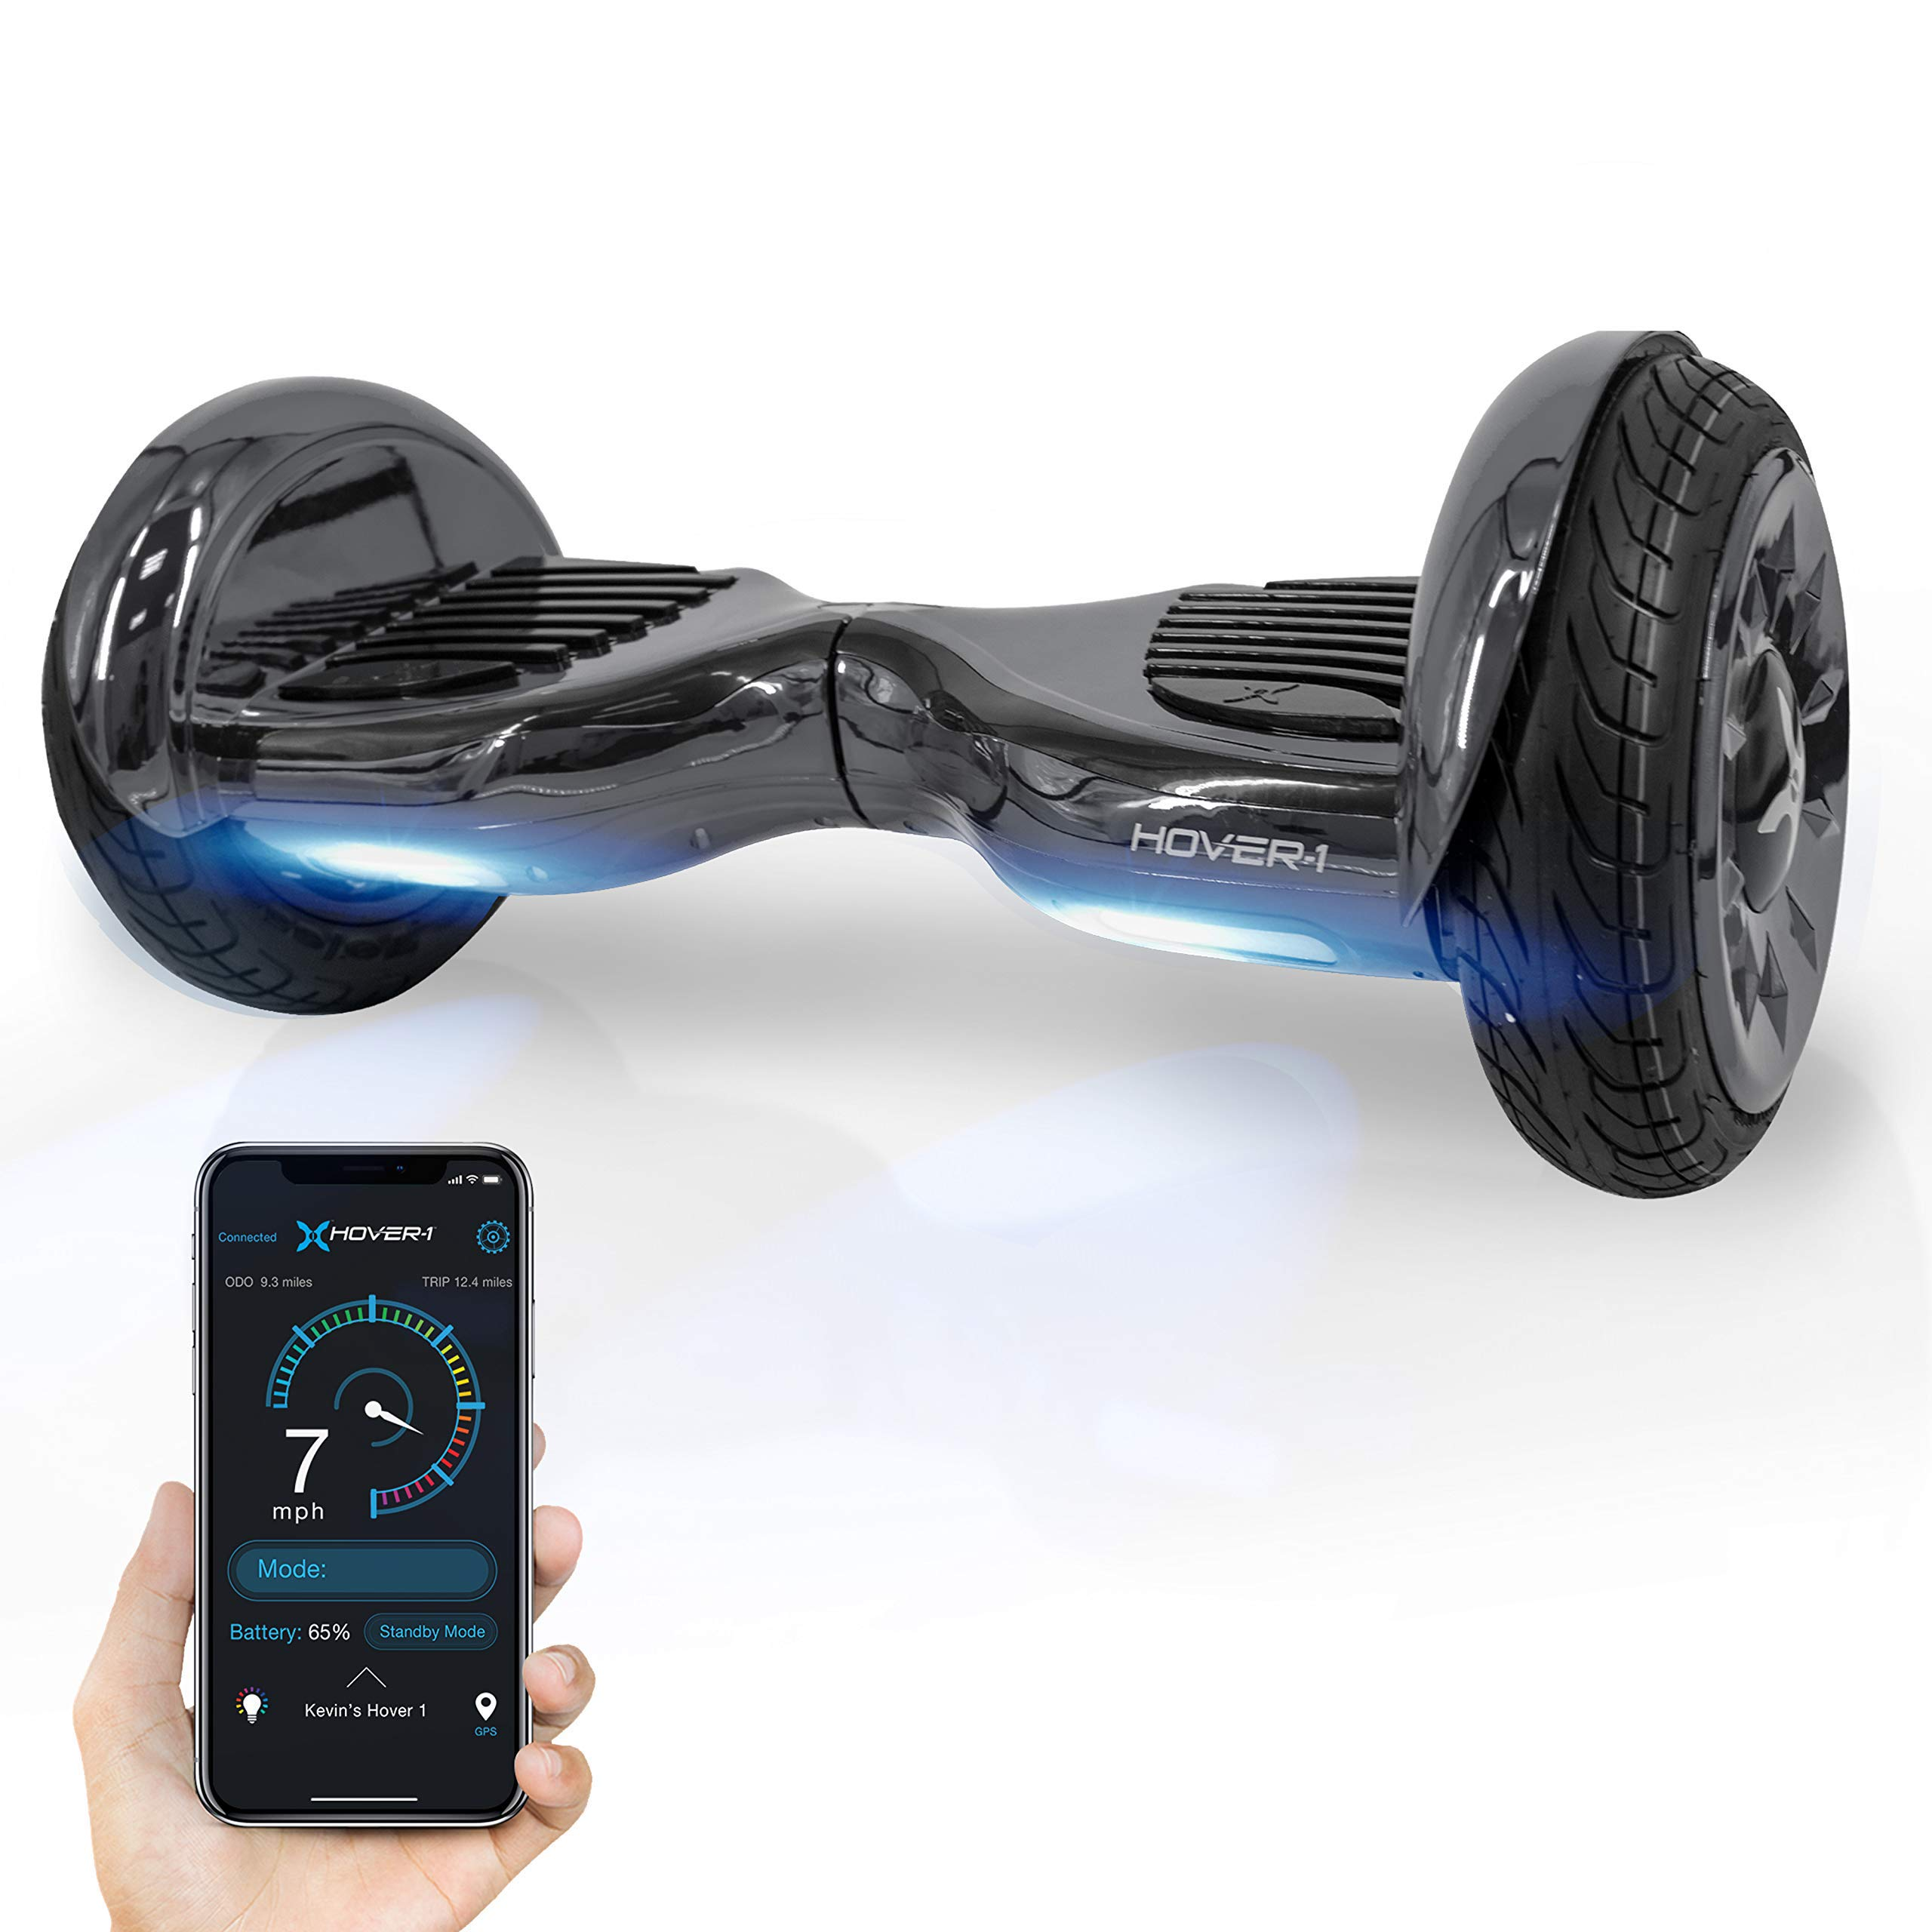 Hover-1 Titan Electric Self-Balancing Hoverboard Scooter